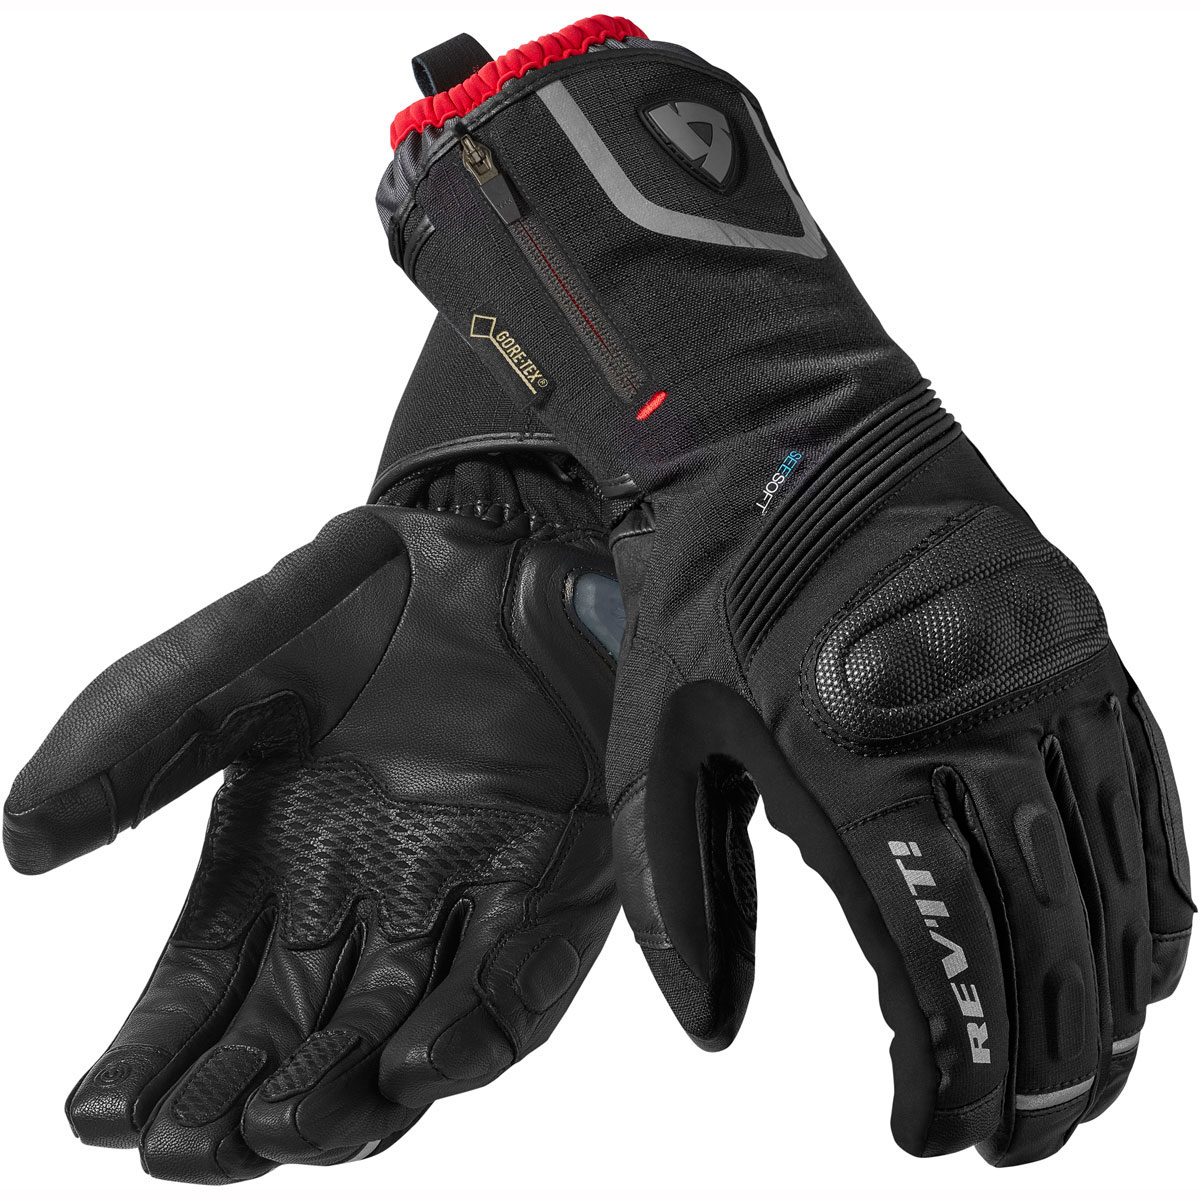 The Rev'it! Taurus Gloves